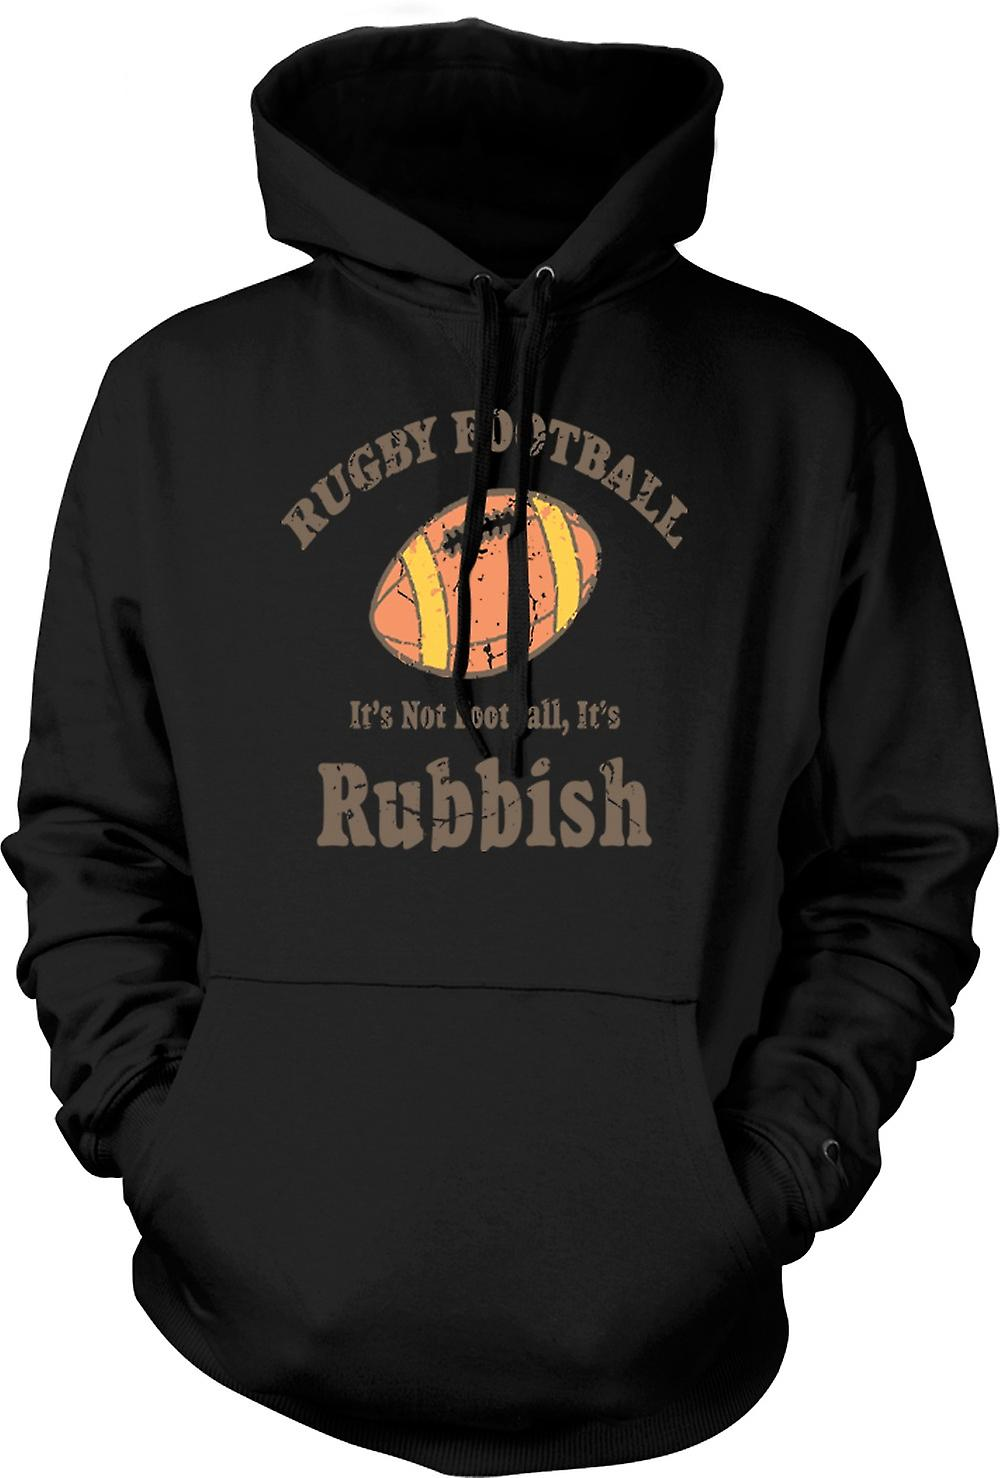 Mens Hoodie - Rugby Football Rubbish - Funny